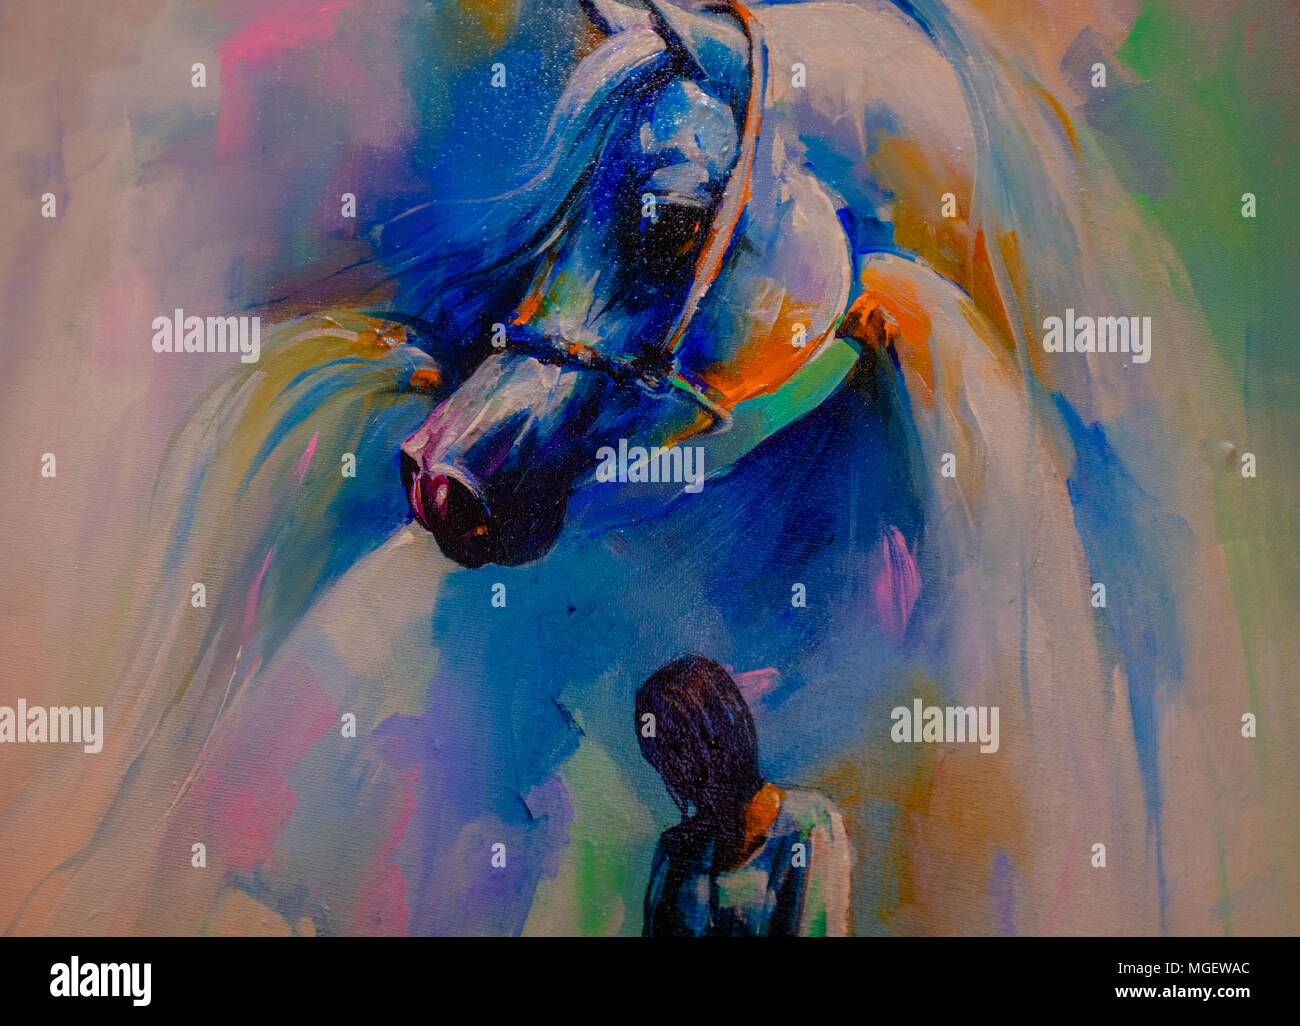 Acrylic Painting Of Horse High Resolution Stock Photography And Images Alamy